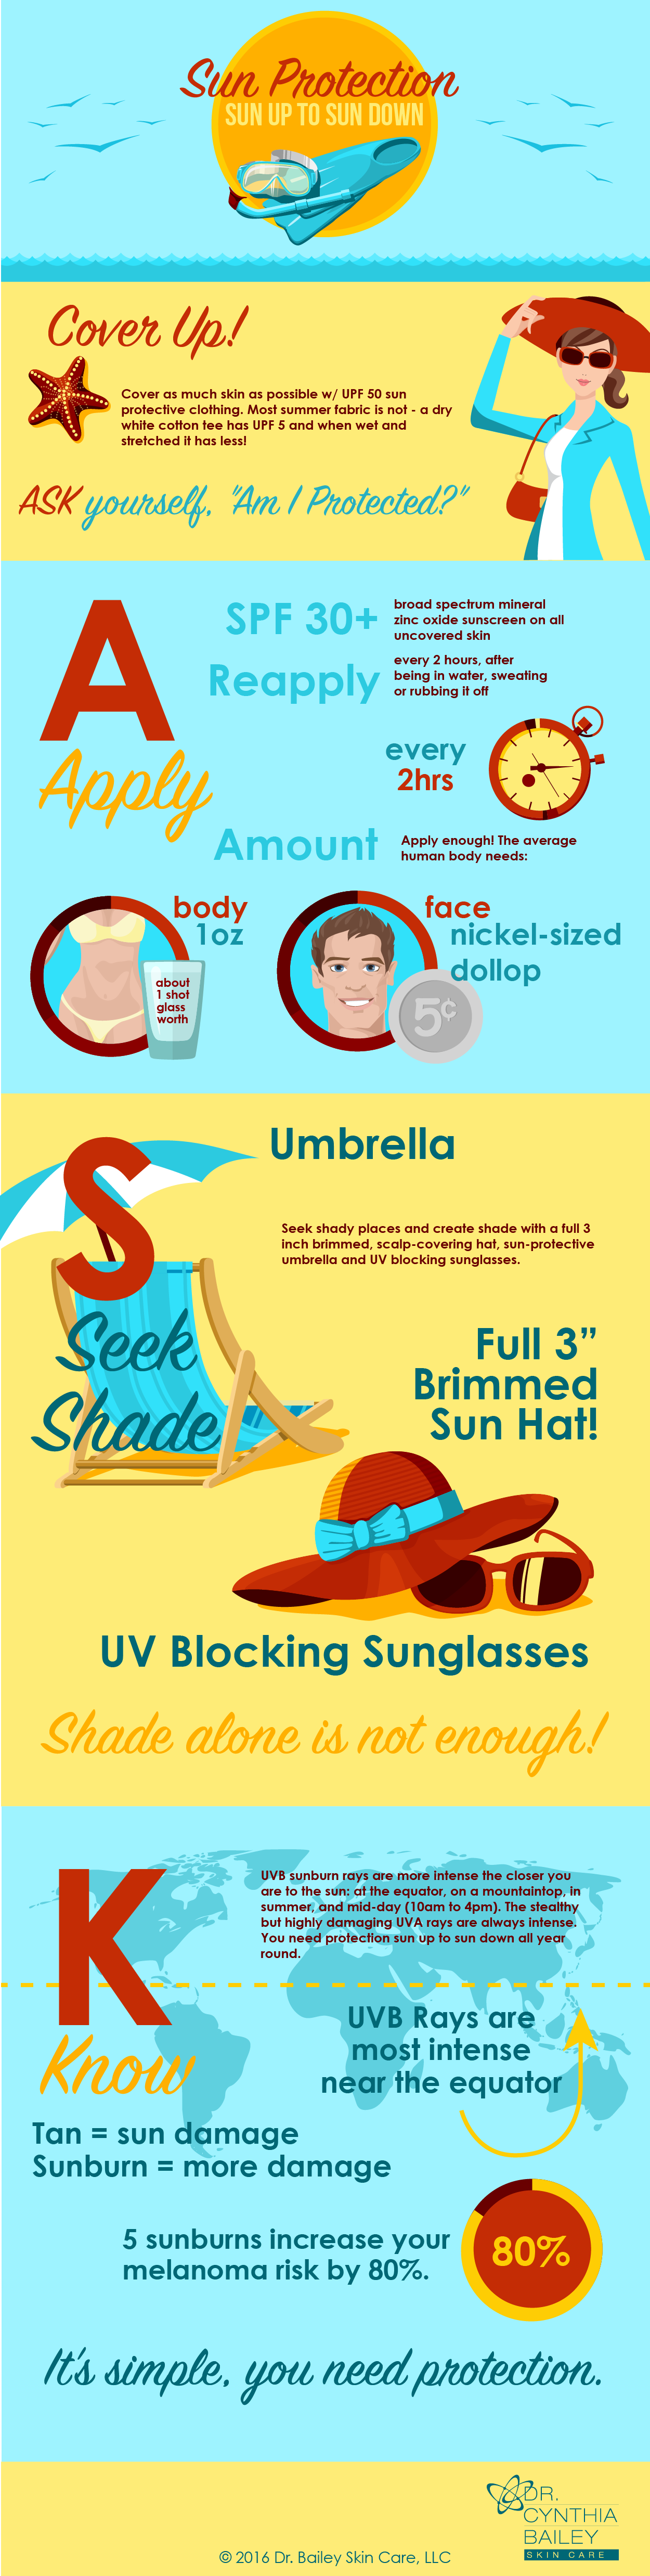 Get summer sun protection with these tips from a dermatologist.